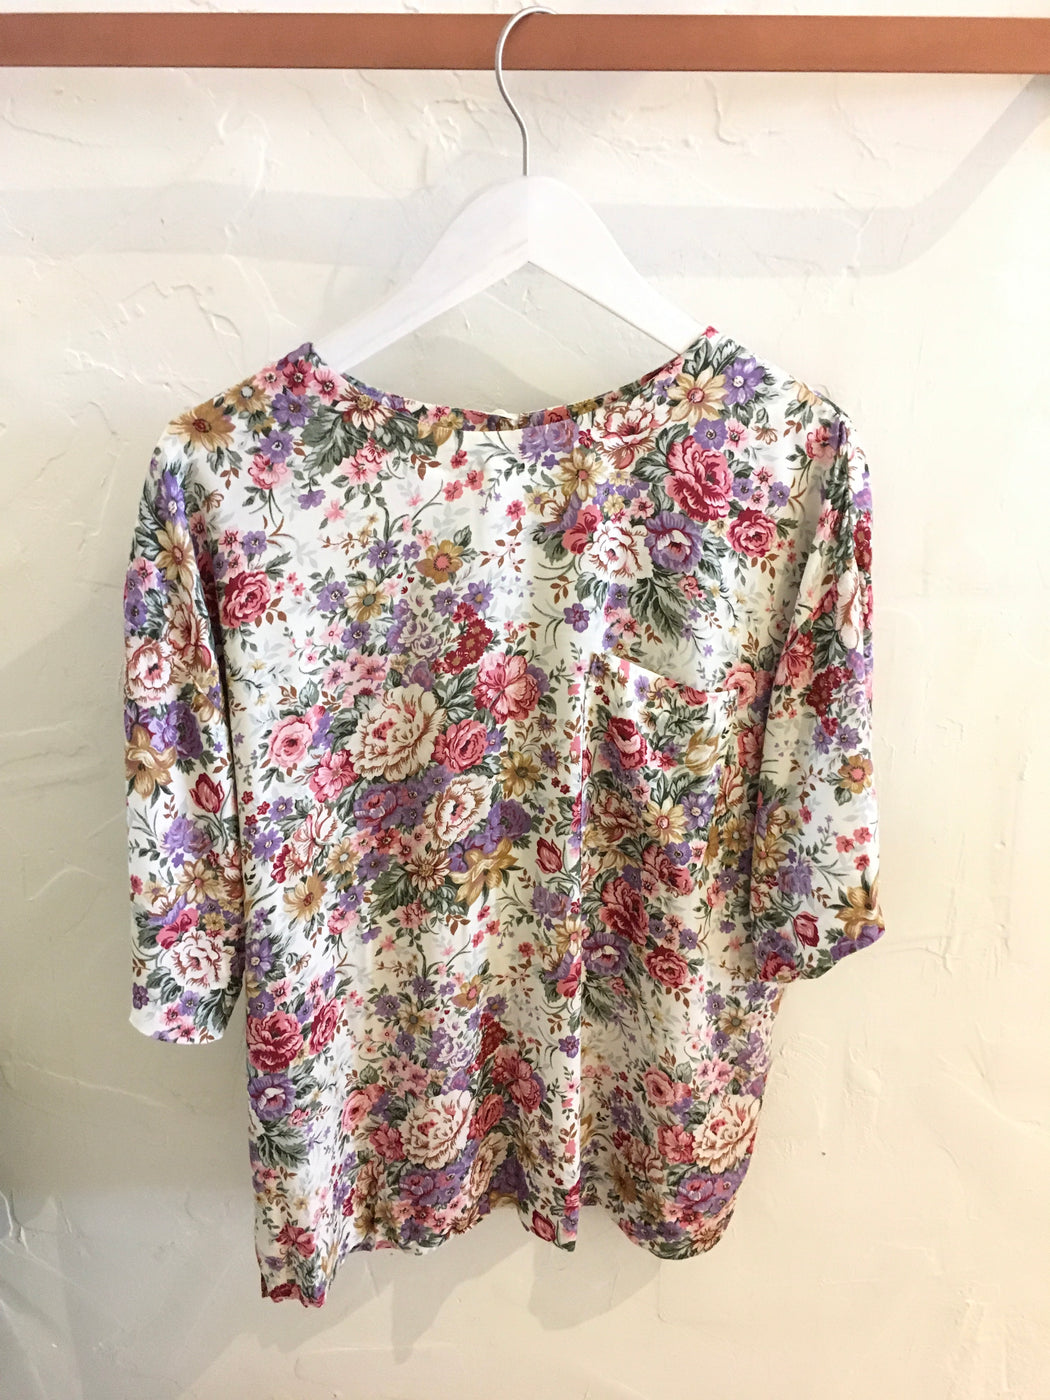 First Option Pink Floral Blouse with Button Closure - Size M